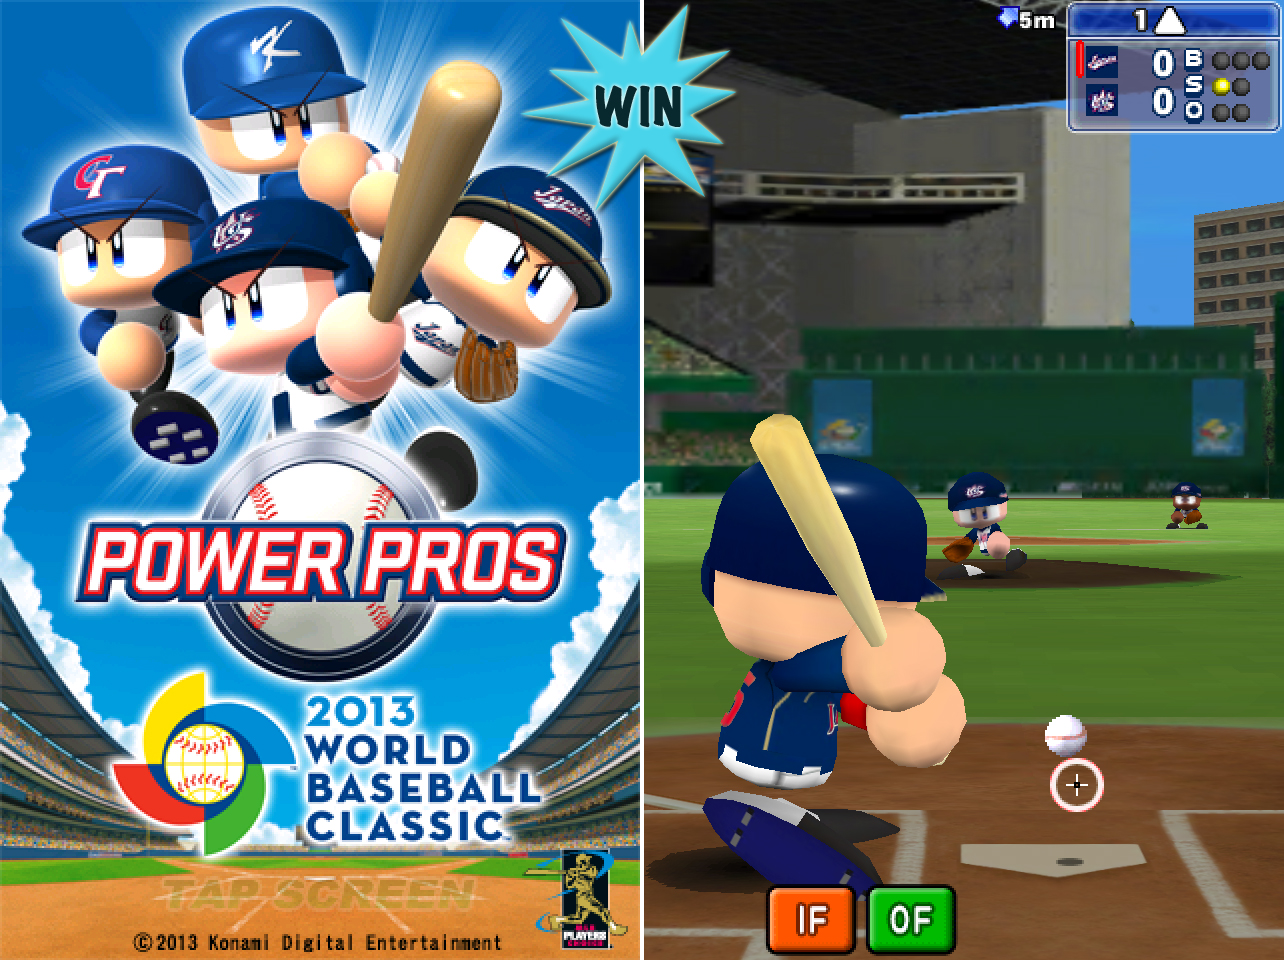 Win A PowerPros 2013 World Baseball Classic Promo Code And Become World Champ